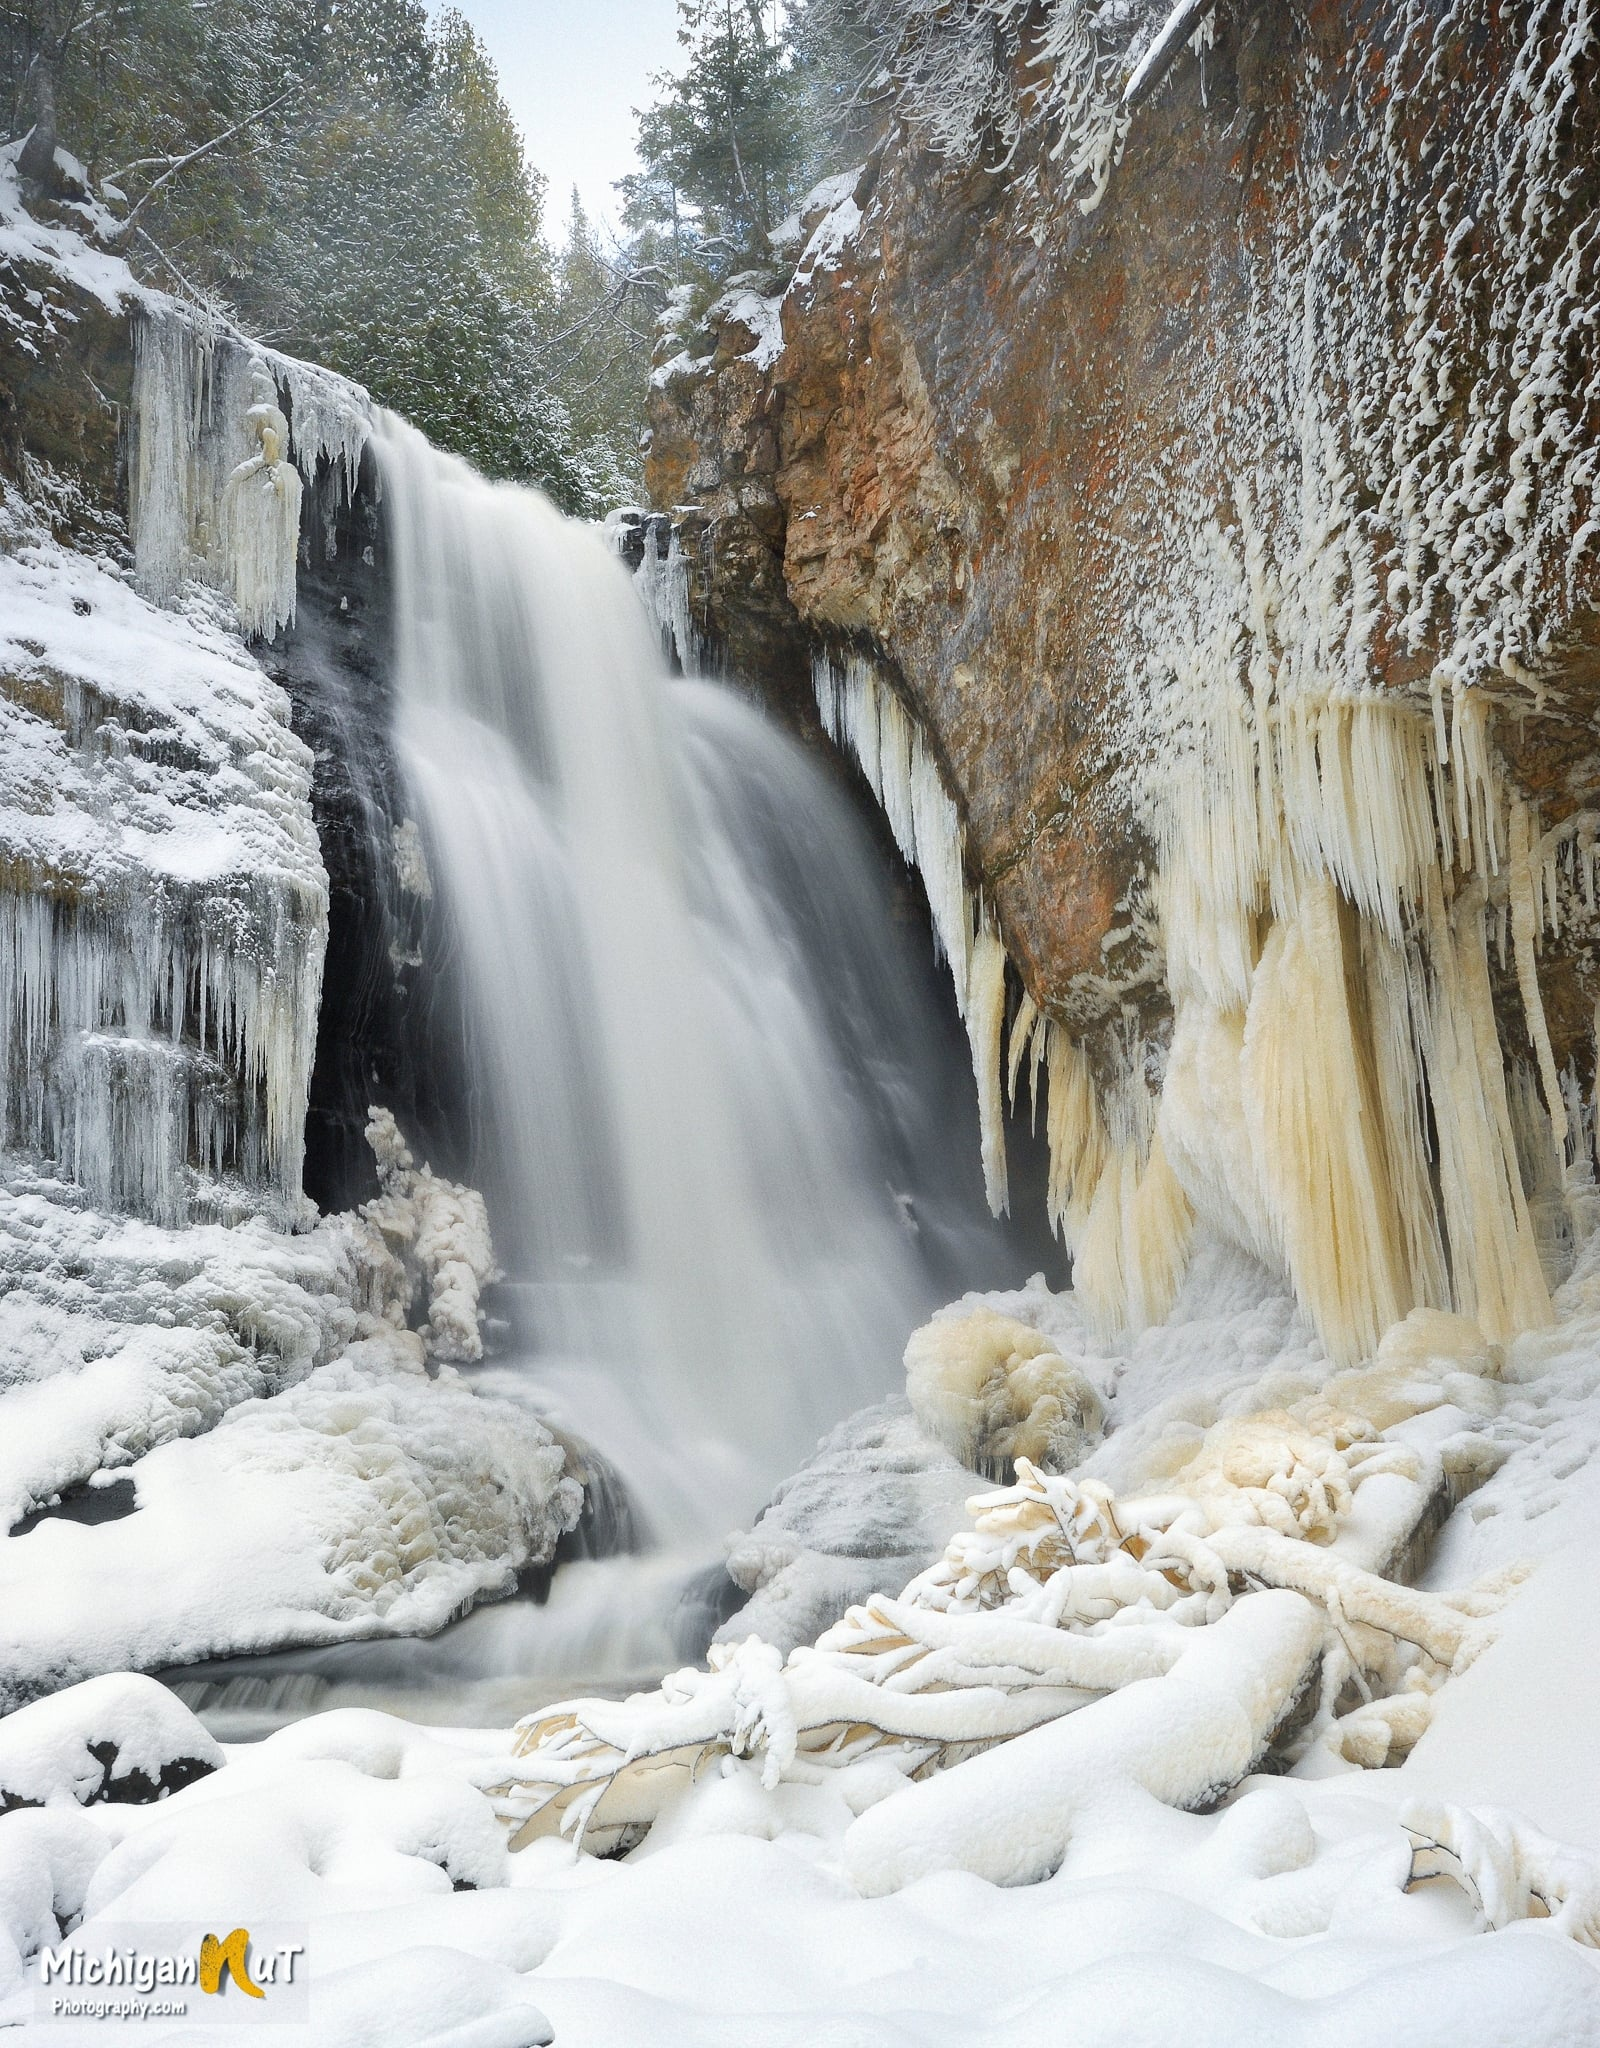 Early Winter at Miners Falls by Michigan Nut Photography